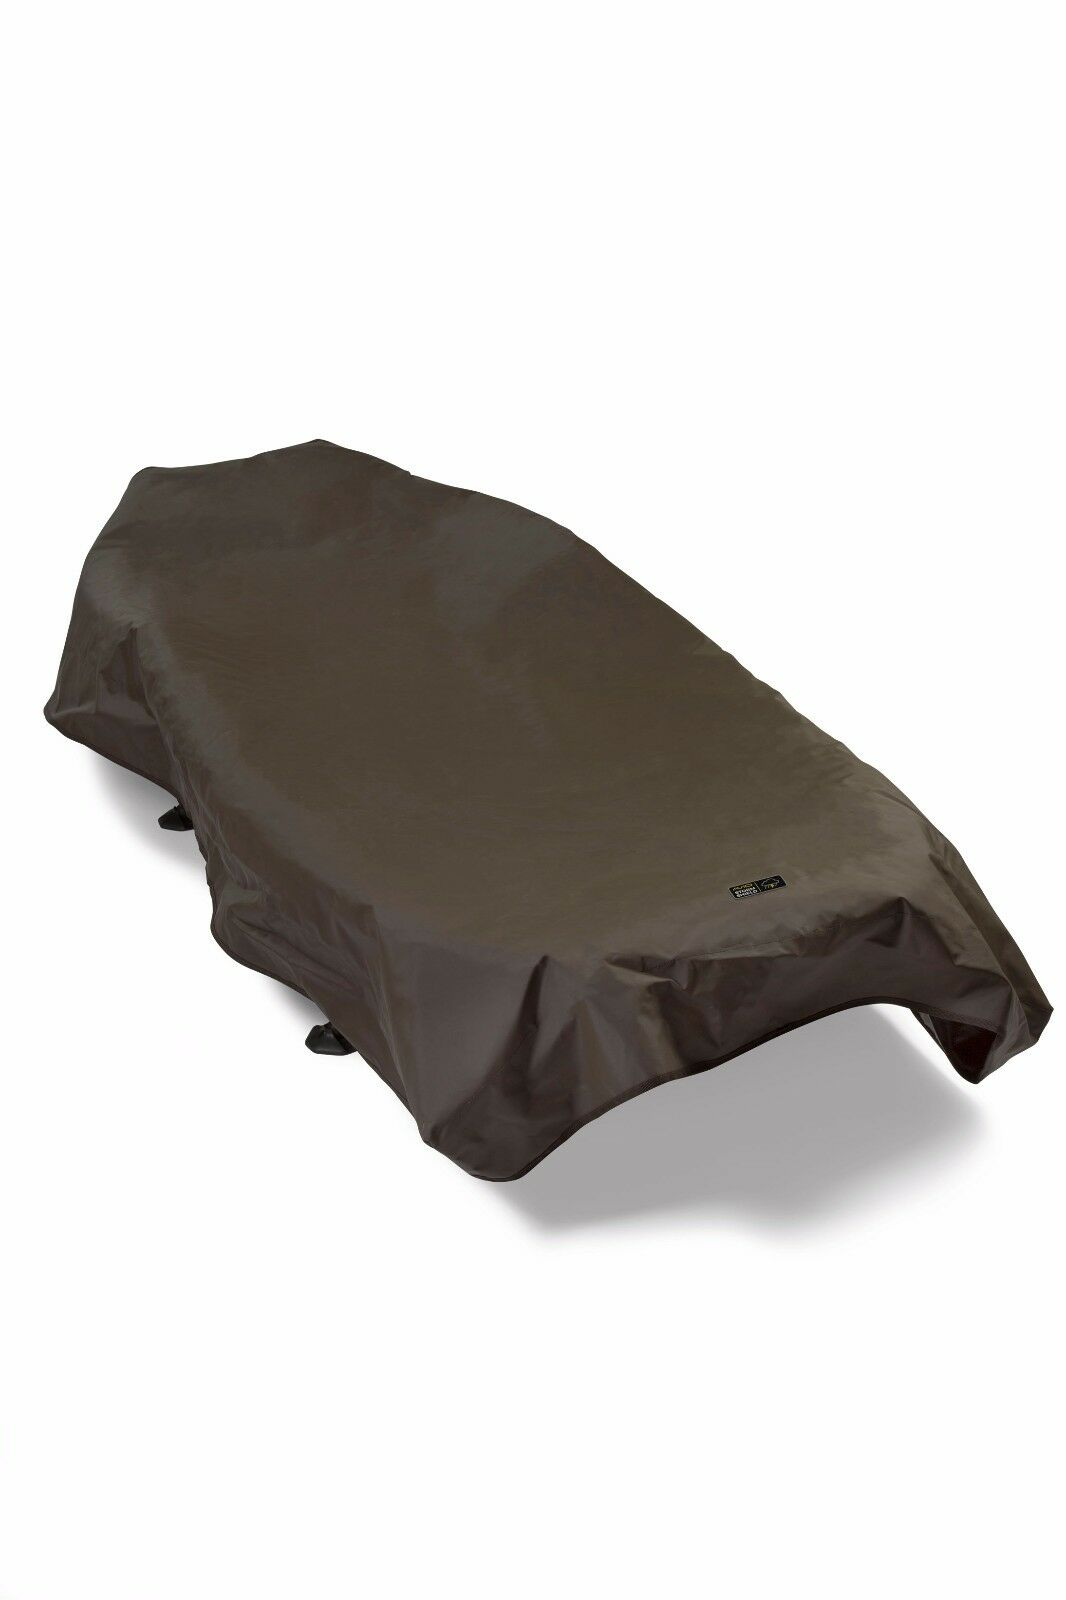 Avid Stormshield Bedchair Cover NEW Fishing Carp Fishing NEW Waterproof Sleeping Bag Cover 148e75